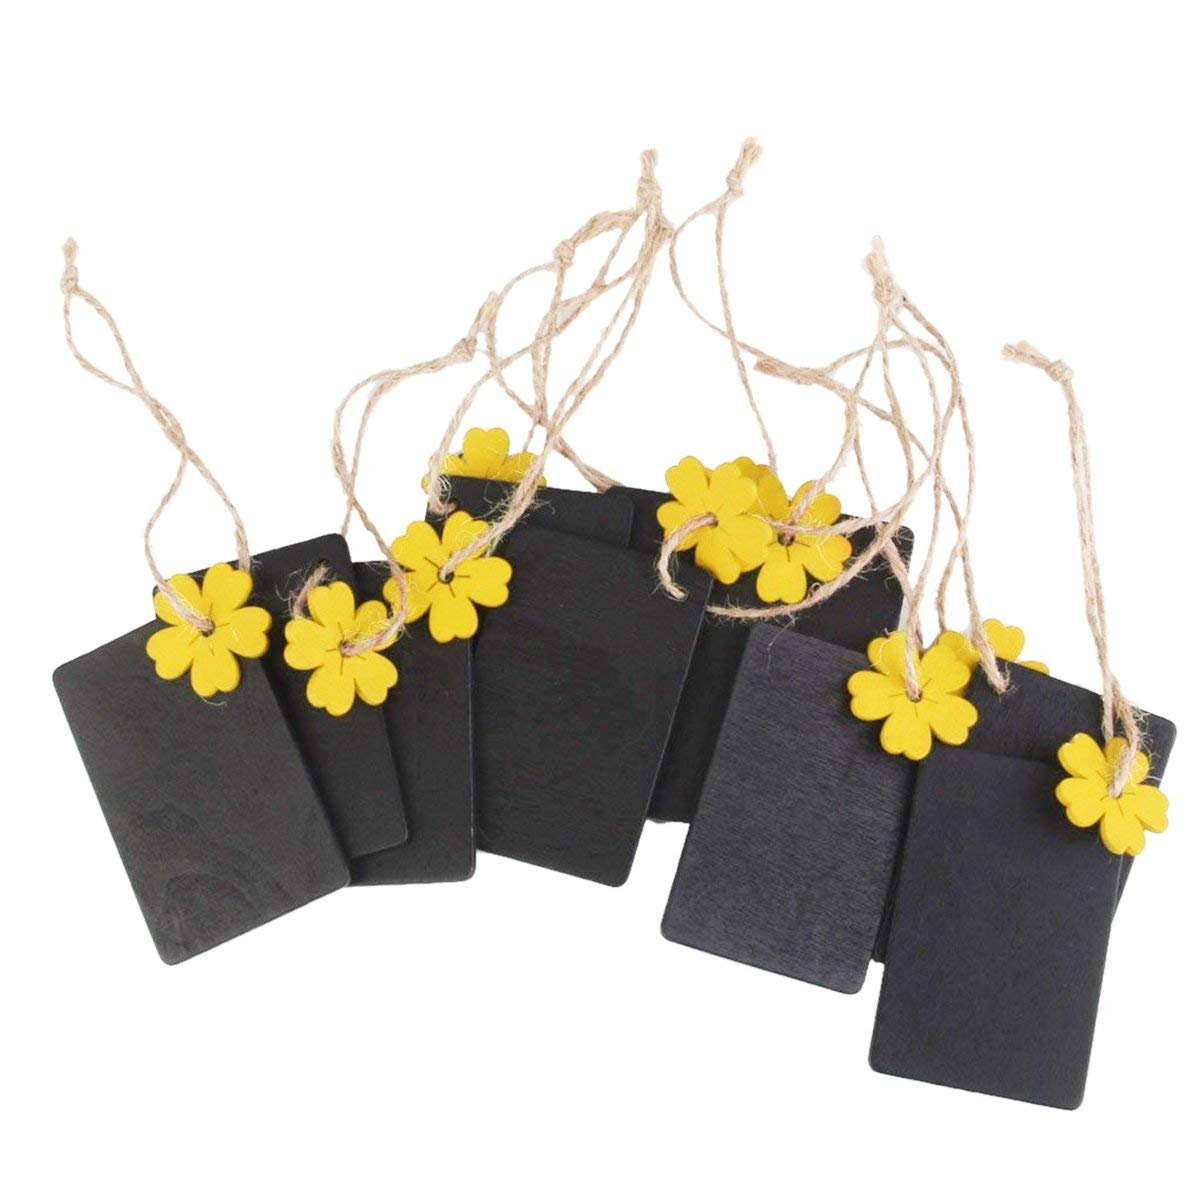 ULTNICE 10pcs Mini Chalkboard Hanging Blackboard Wood Gift Tags Favor Tags with Twine and Yellow Flower